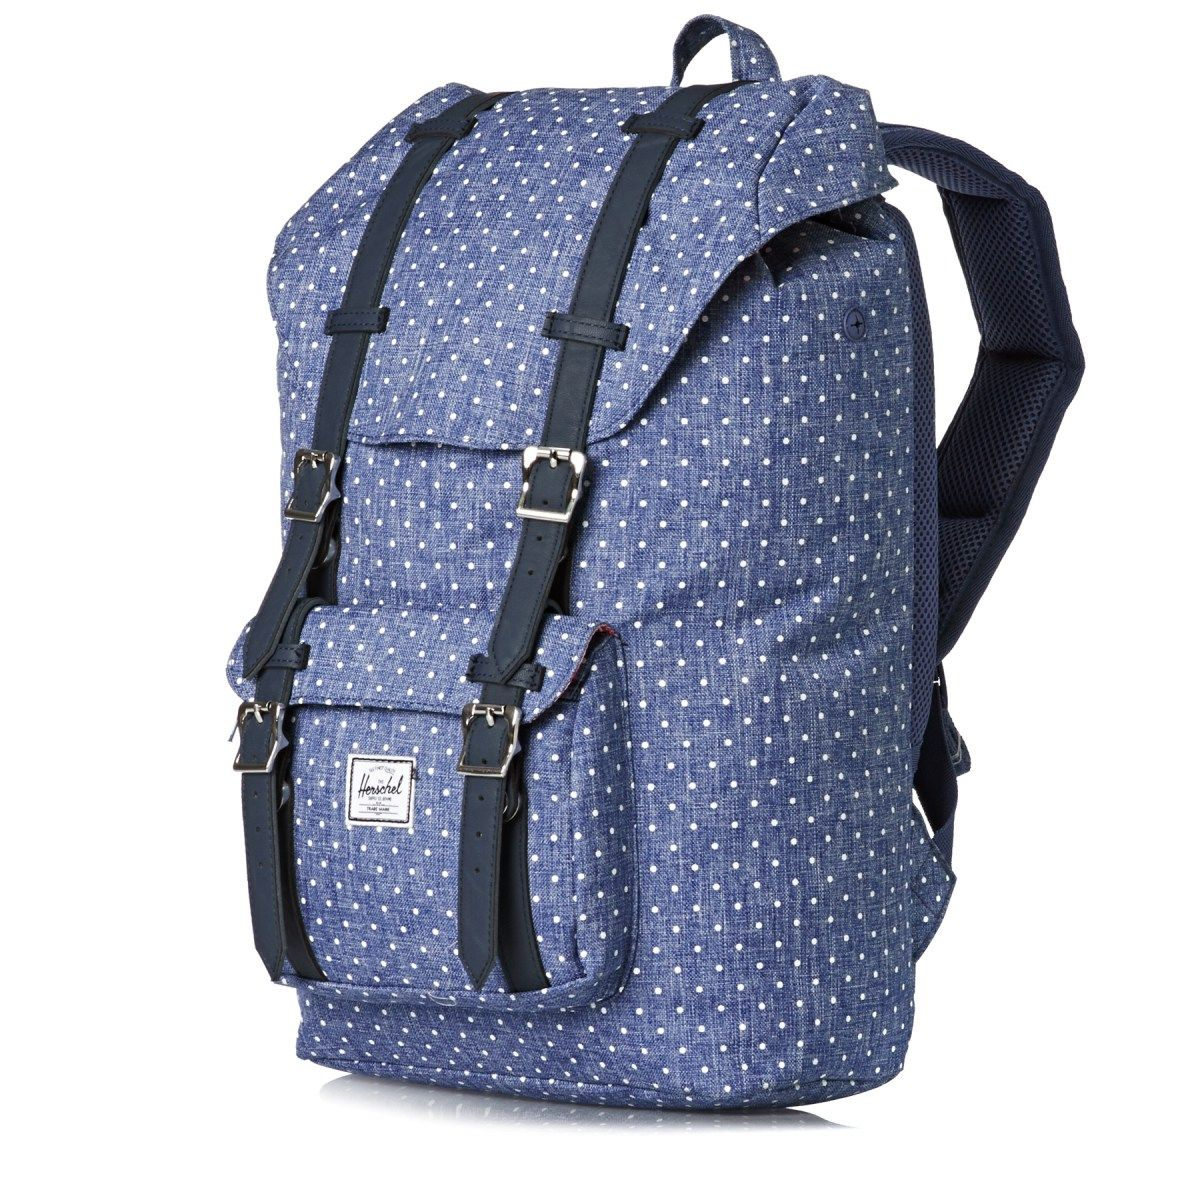 Women s Herschel Backpacks - Herschel Little America Mid-volume Laptop  Backpack - Limoges Crosshatch  f18da41bc540e